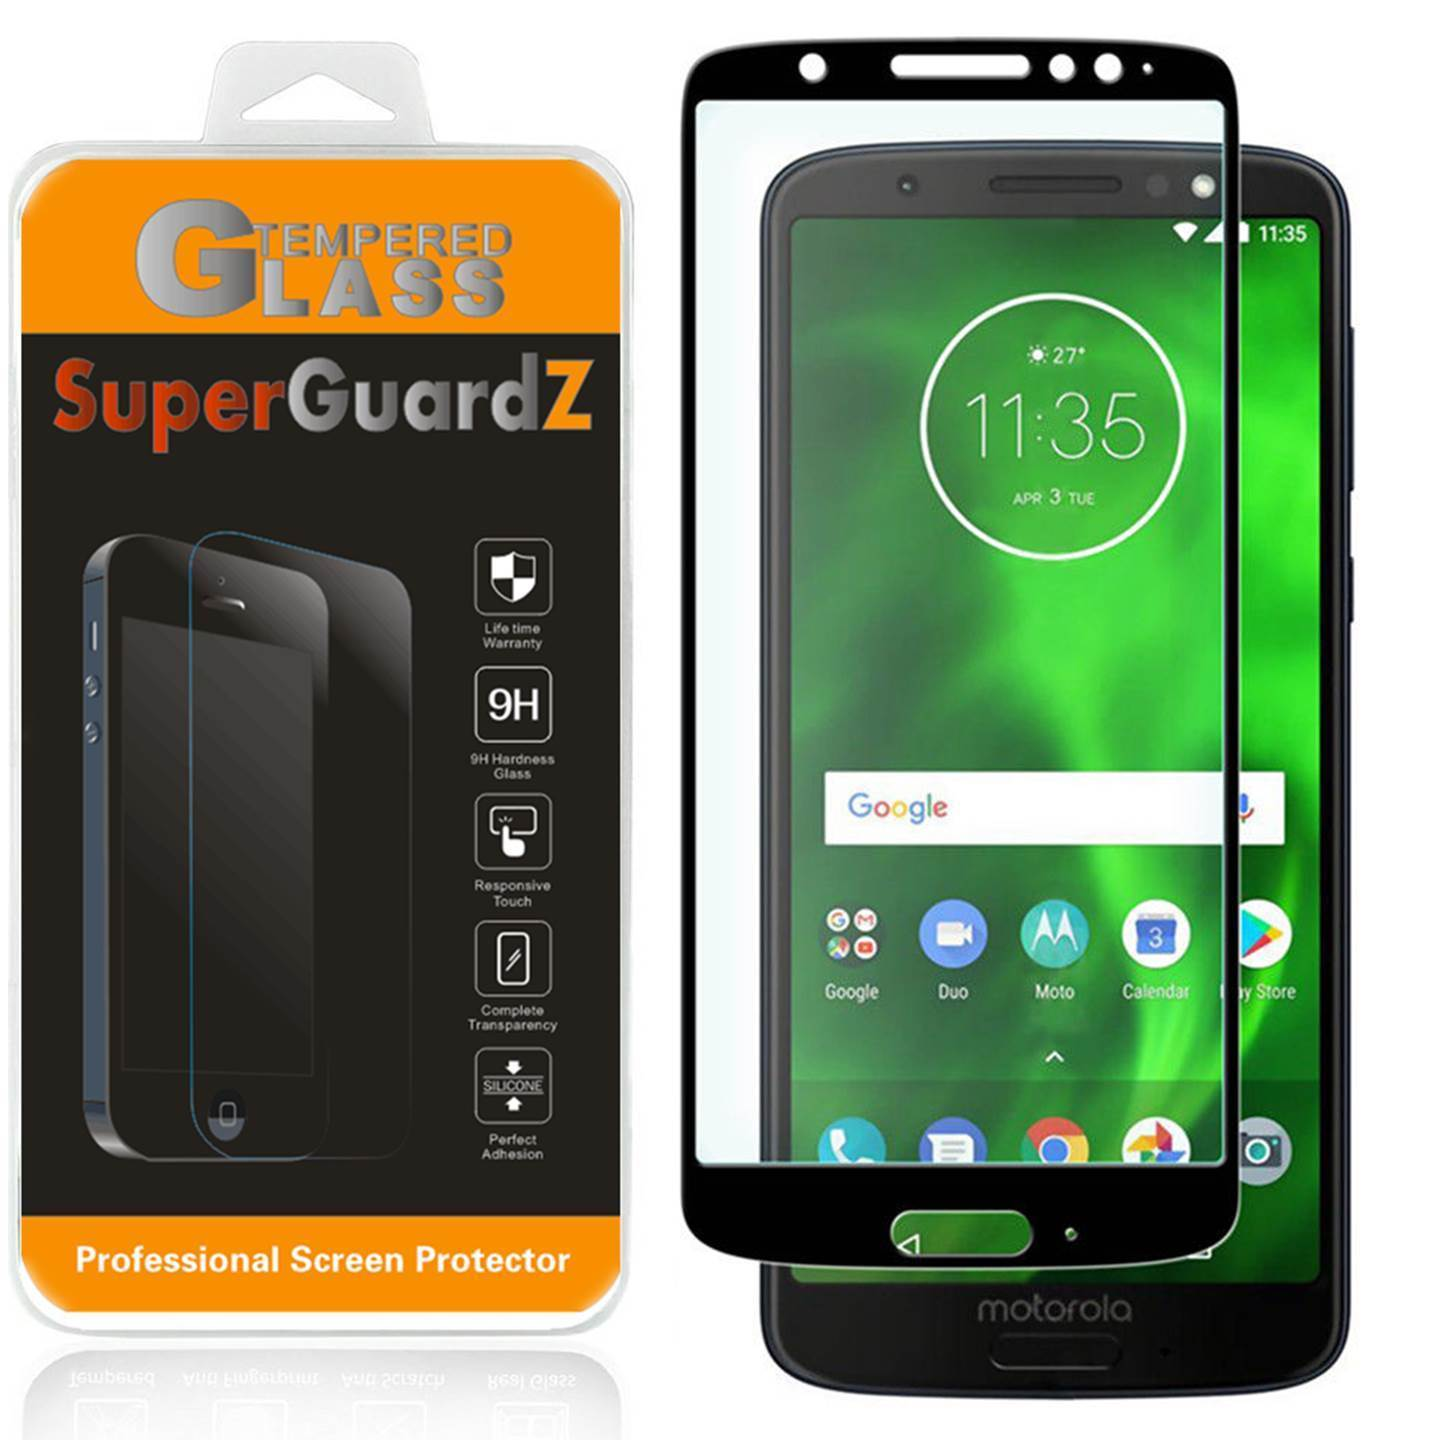 For Motorola Moto G6 - SuperGuardZ Full Cover Tempered Glass Screen Protector, Edge-To-Edge, 9H, Anti-Scratch, Anti-Bubble, Anti-Fingerprint